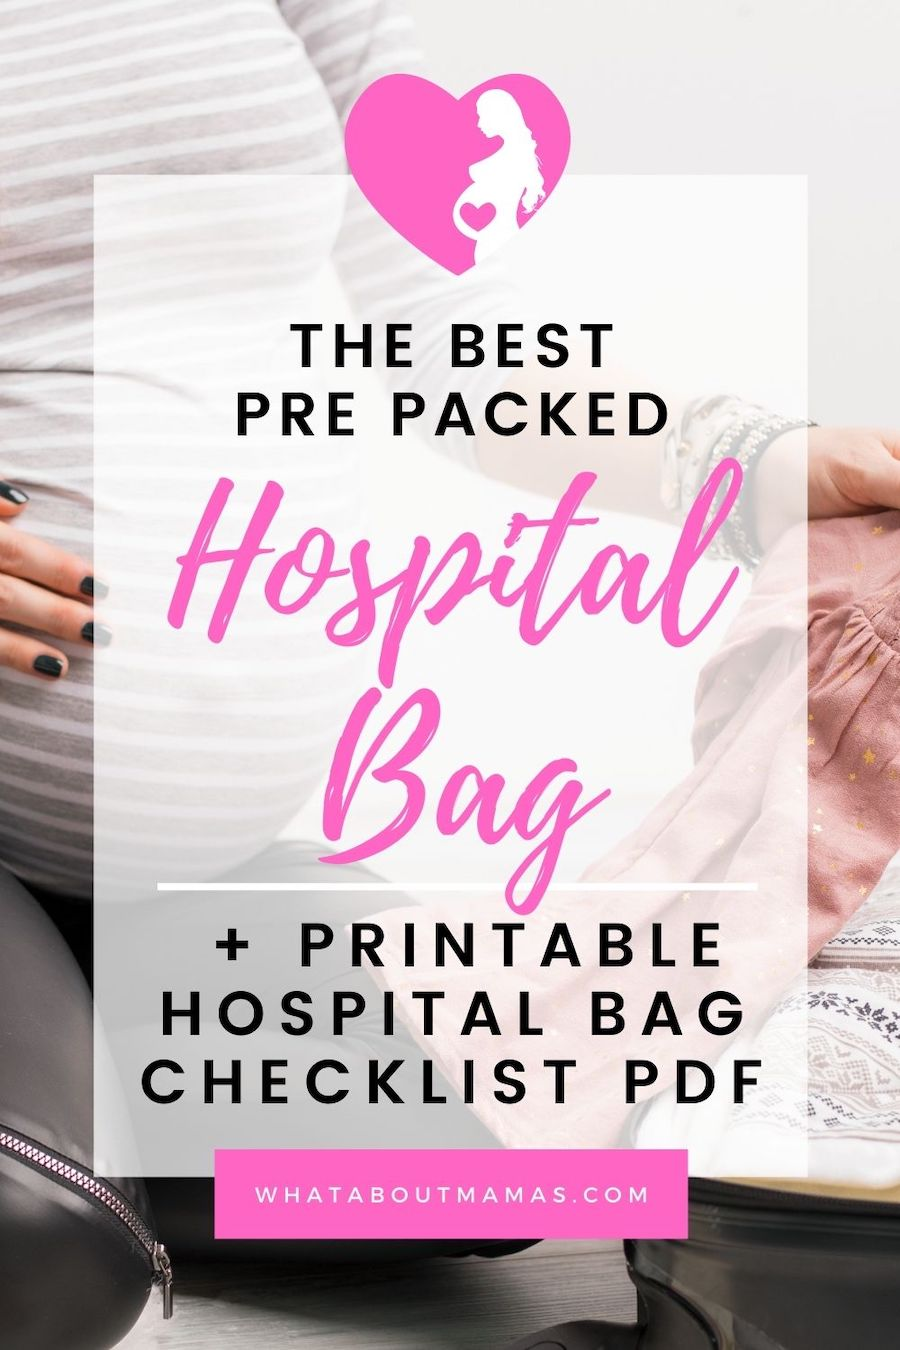 The best pre packed hospital bag